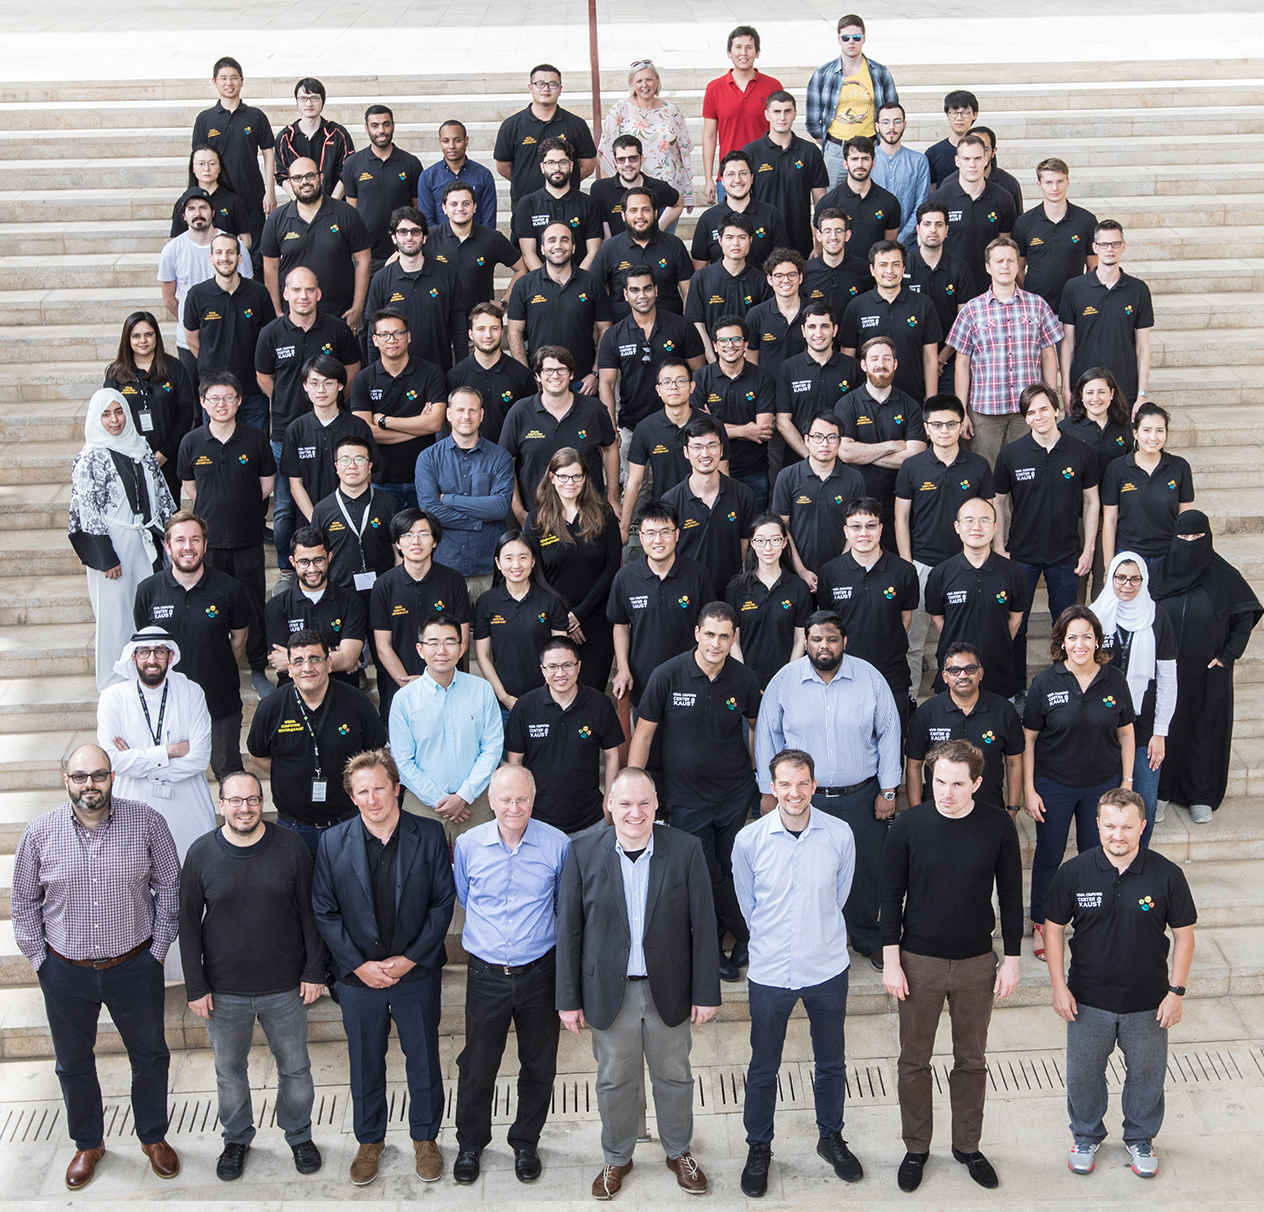 KAUST-CEMSE-VCC-Group-Photo-2019-Resized